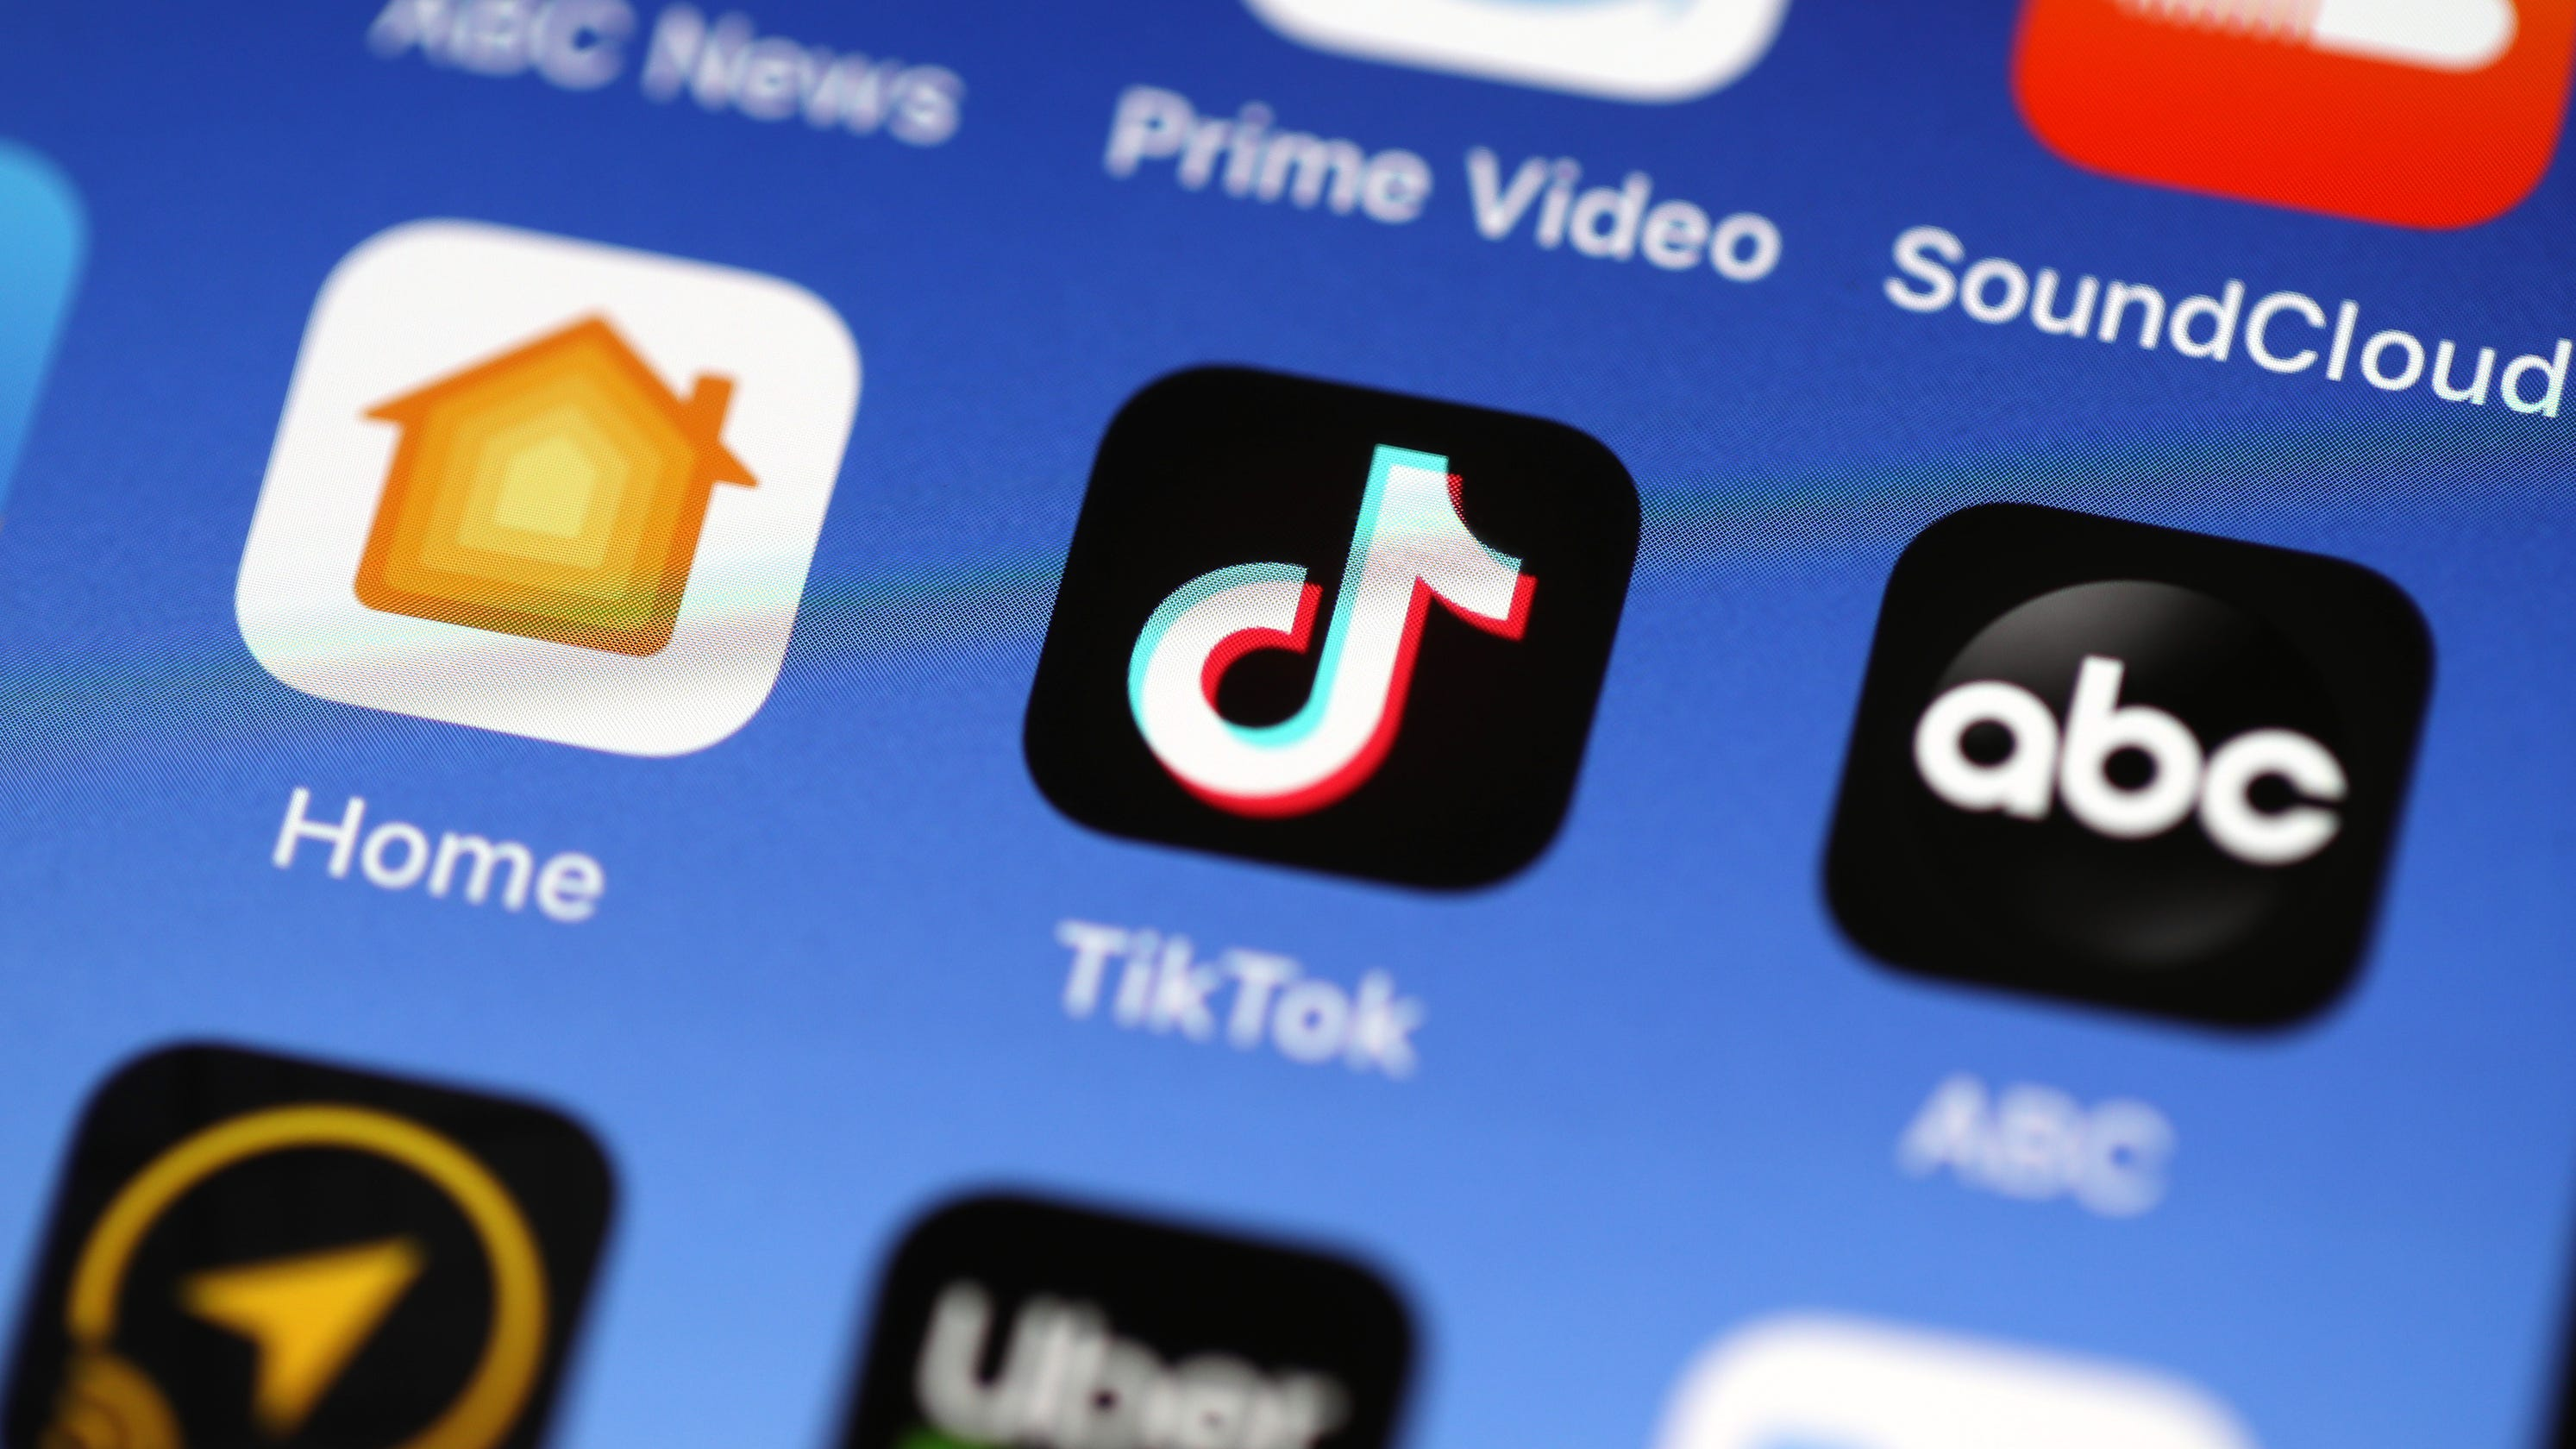 TikTok apologizes after claims it blocked #BlackLivesMatter, George Floyd posts - USA TODAY